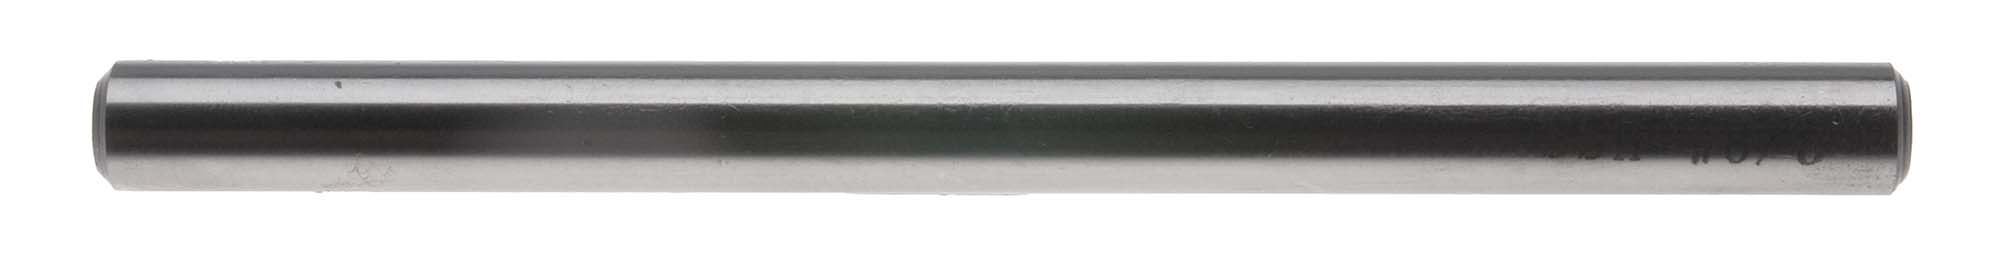 "G (.261"") Drill Blank, High Speed Steel"